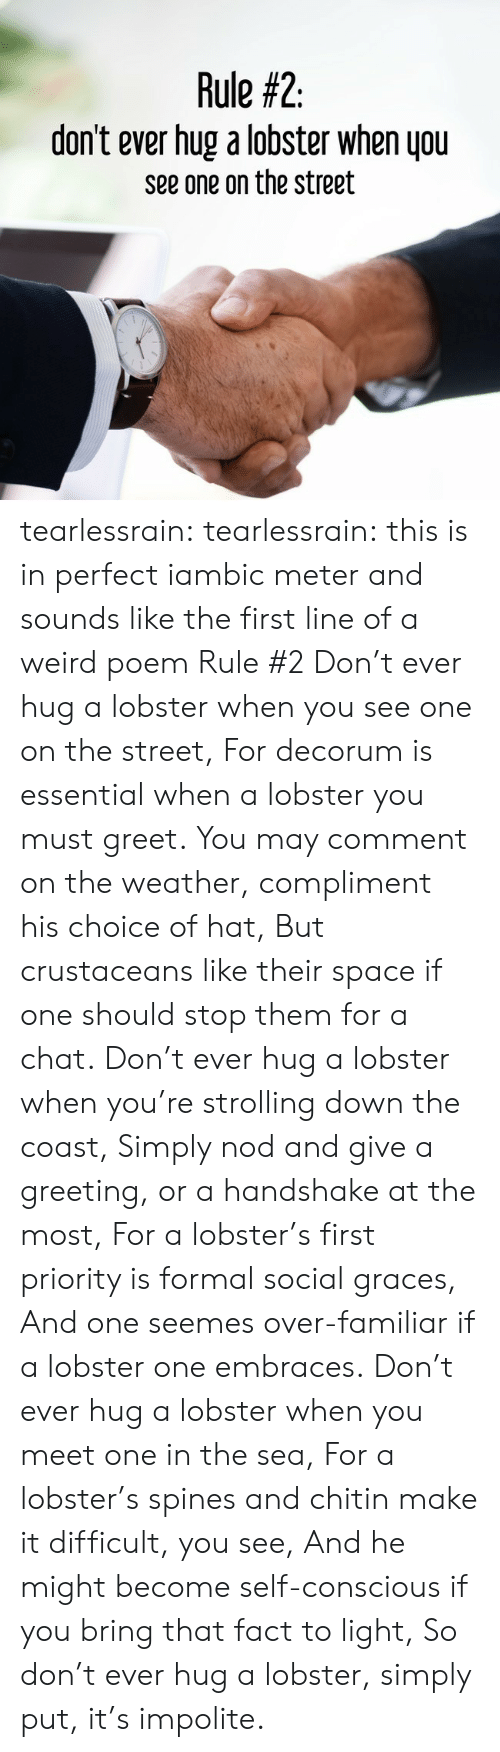 Tumblr, Weird, and Blog: Rule #2  don't ever hug a lobster when you  see one on the street tearlessrain: tearlessrain: this is in perfect iambic meter and sounds like the first line of a weird poem Rule #2 Don't ever hug a lobster when you see one on the street, For decorum is essential when a lobster you must greet. You may comment on the weather, compliment his choice of hat, But crustaceans like their space if one should stop them for a chat.  Don't ever hug a lobster when you're strolling down the coast, Simply nod and give a greeting, or a handshake at the most, For a lobster's first priority is formal social graces, And one seemes over-familiar if a lobster one embraces.  Don't ever hug a lobster when you meet one in the sea, For a lobster's spines and chitin make it difficult, you see, And he might become self-conscious if you bring that fact to light, So don't ever hug a lobster, simply put, it's impolite.